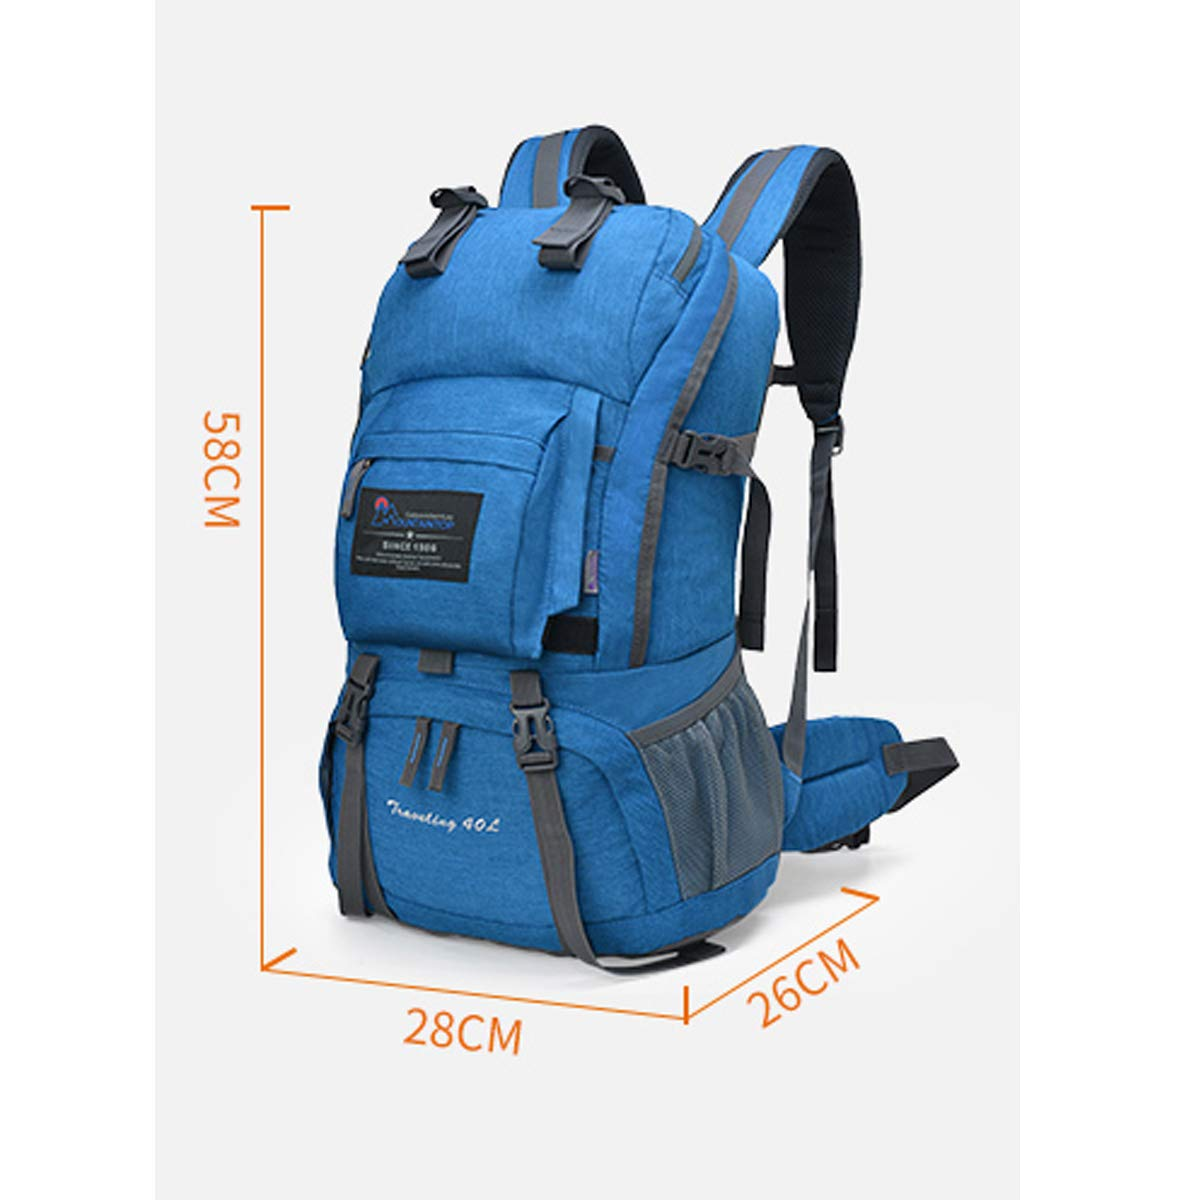 Haoyushangmao Canvas Travel Outdoor Camping Backpack with Rain Cover-40L Latest Models Color : Gray, Size : 40L